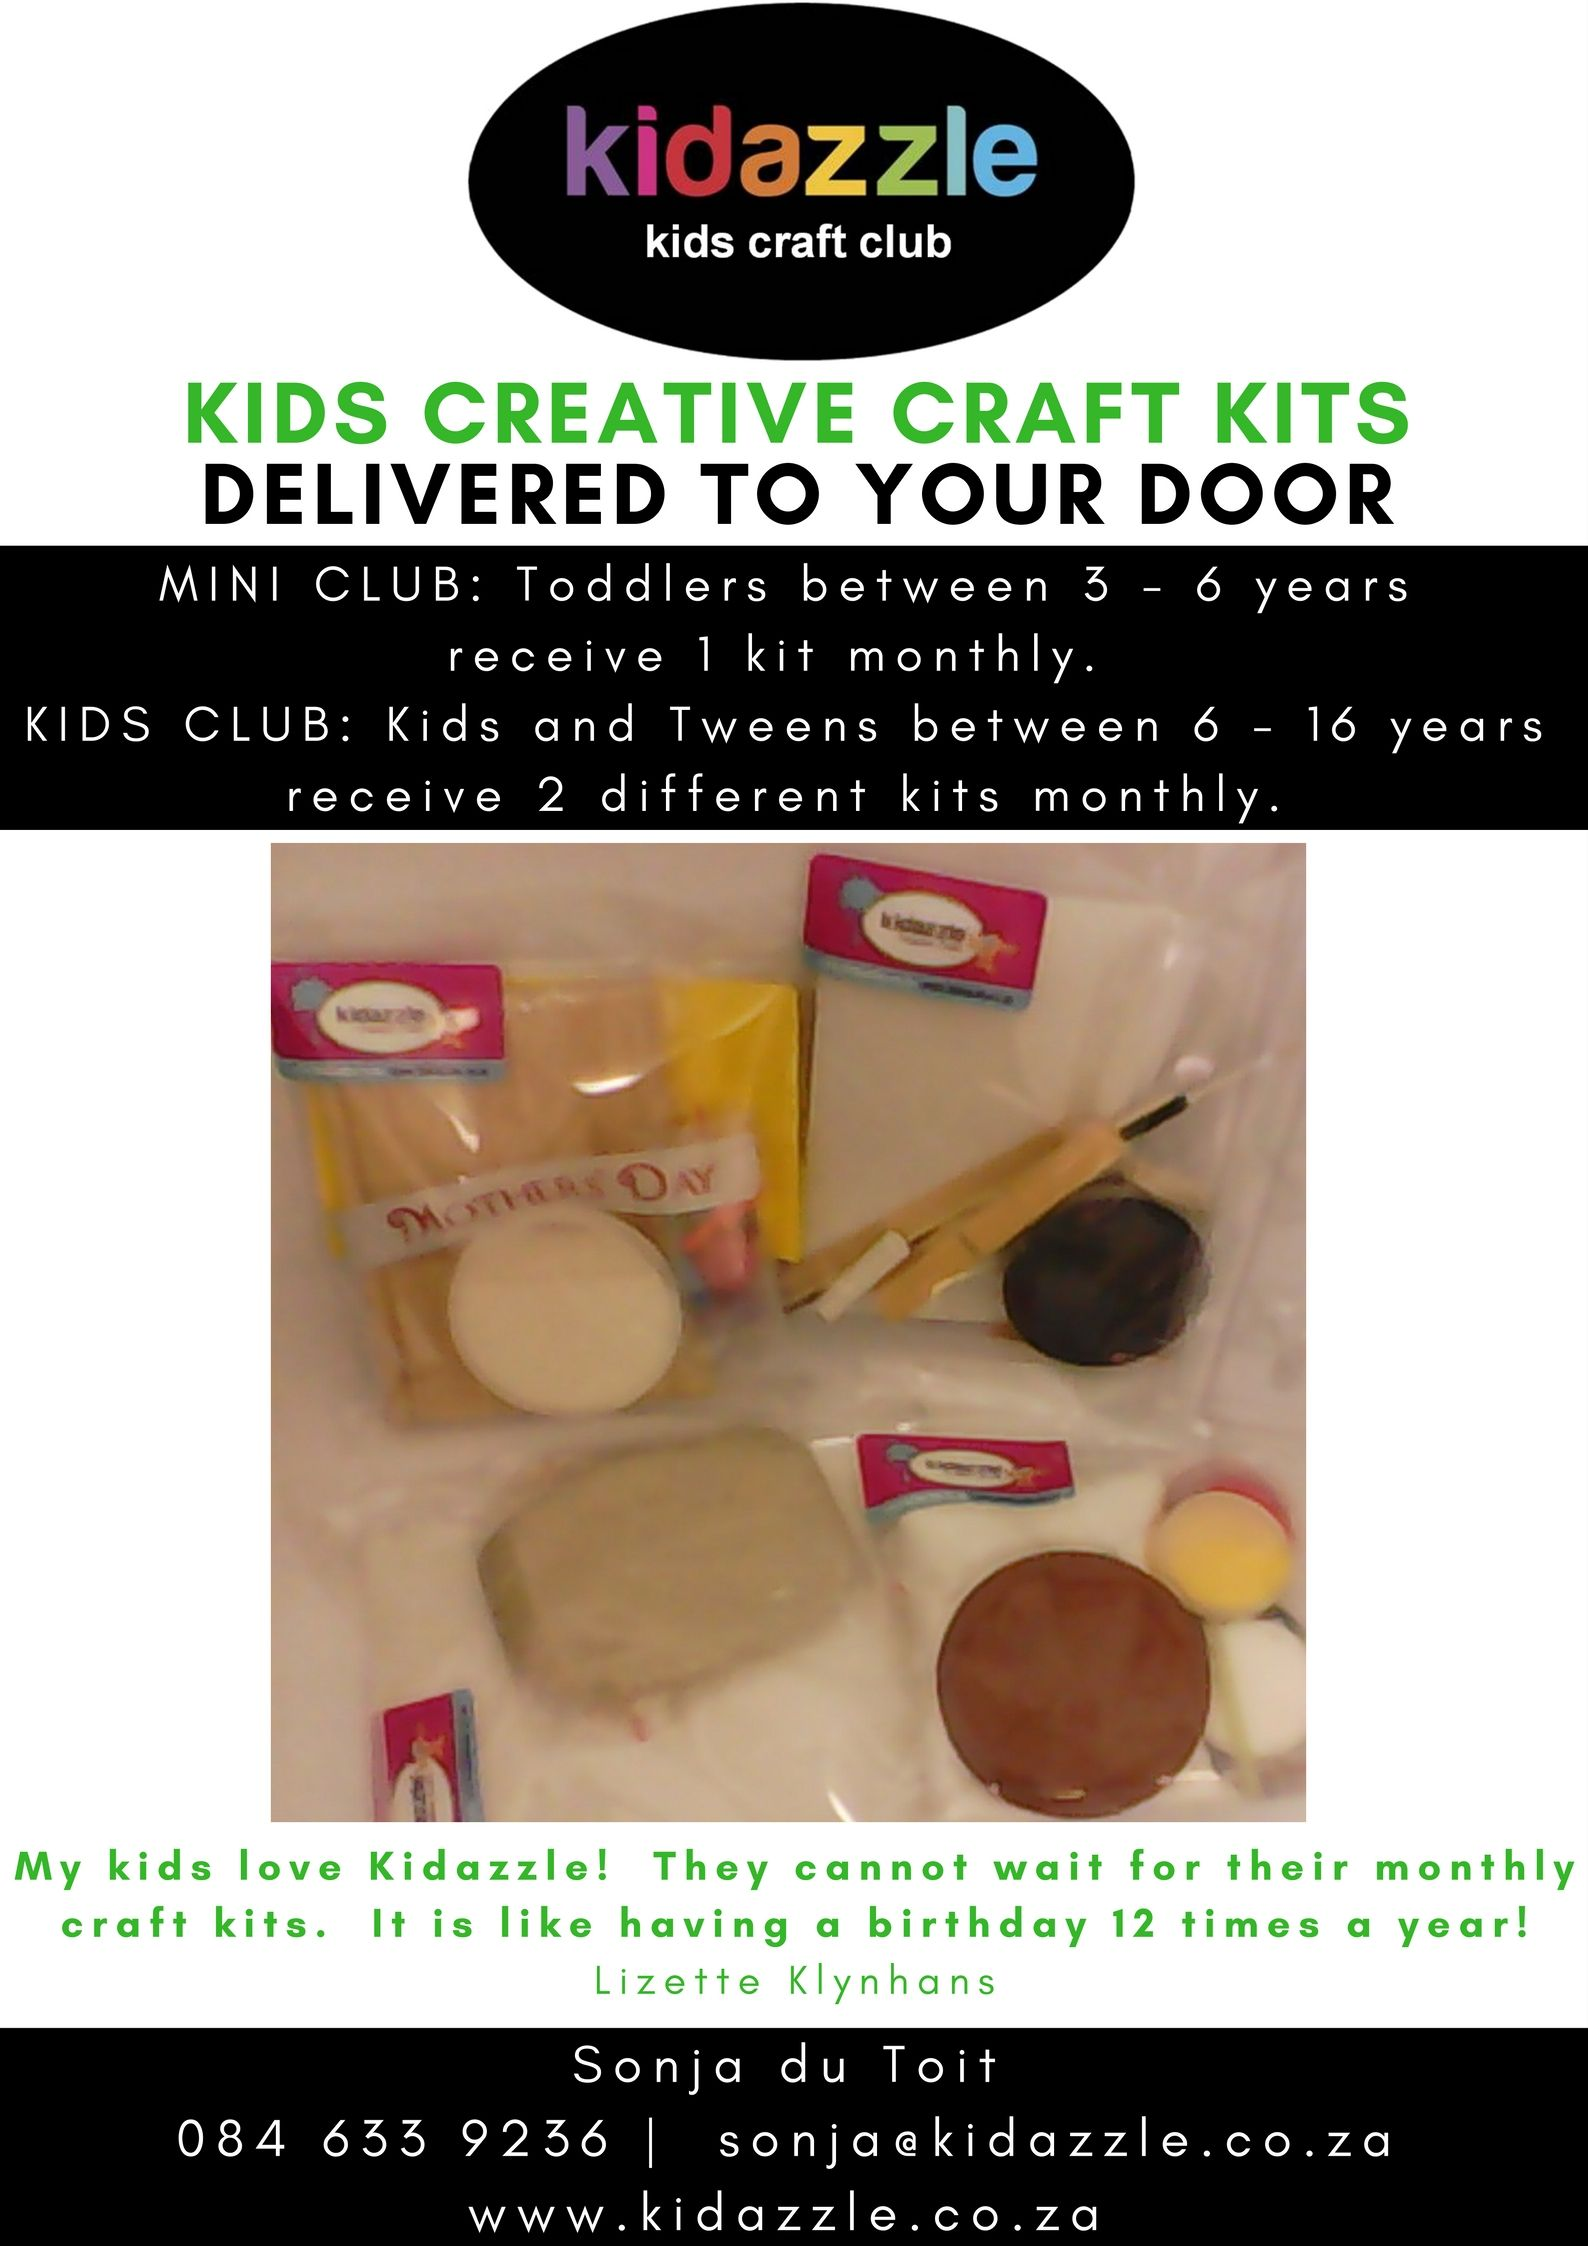 Kids Creative Craft Kits Delivered To Your Door Every Month